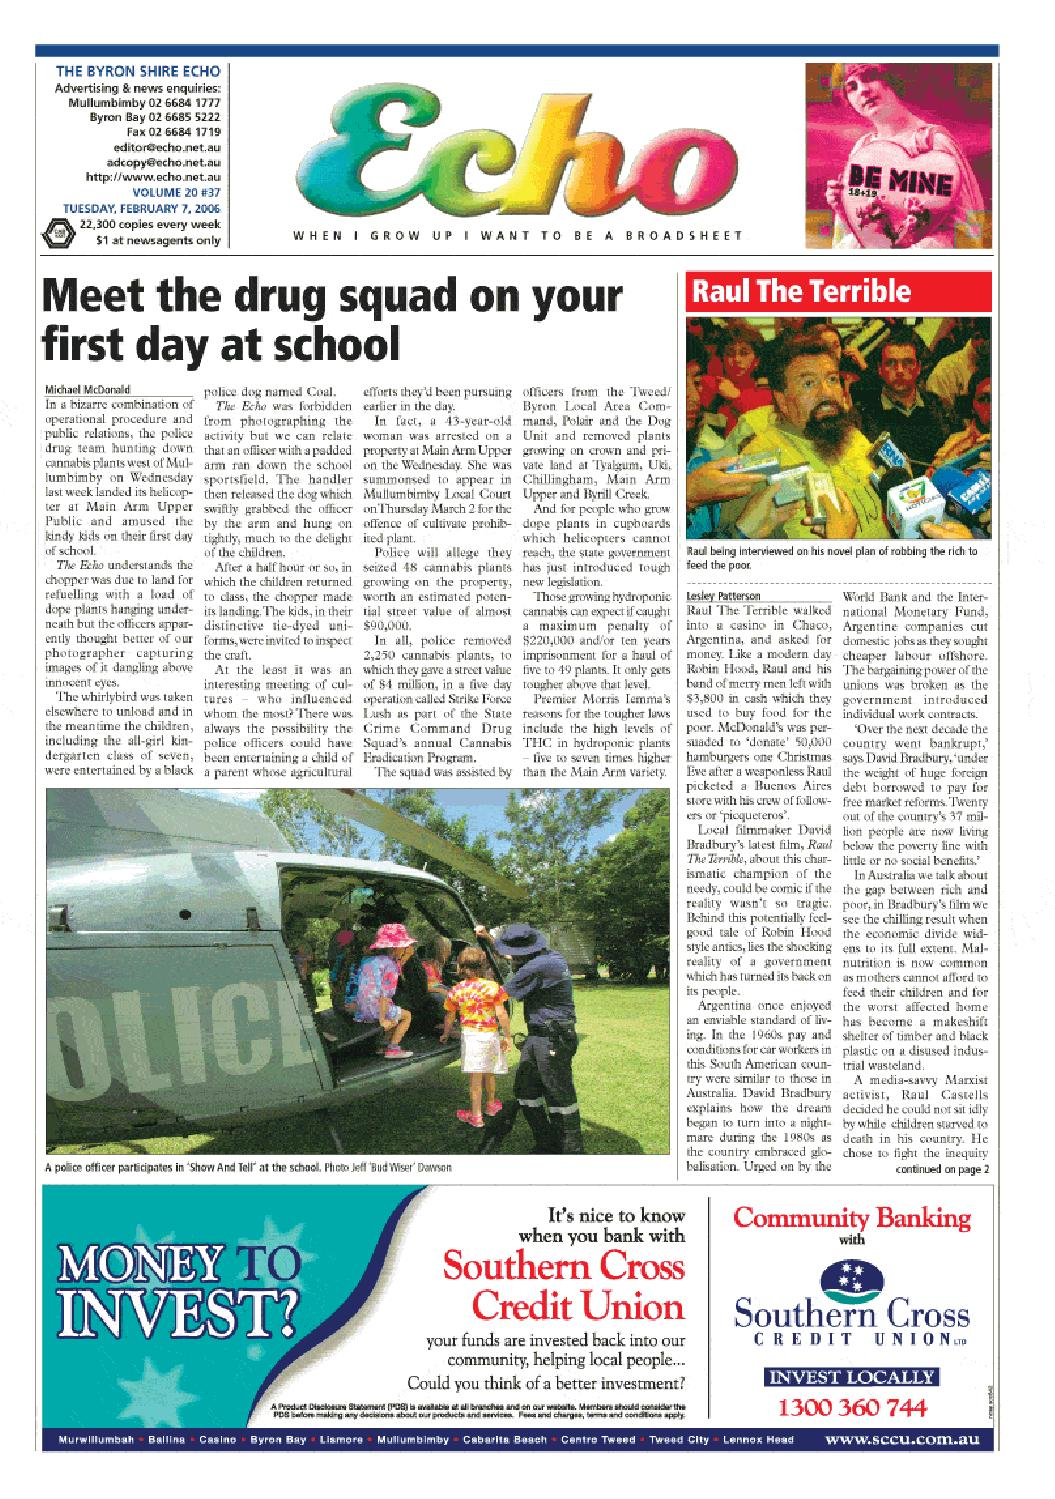 7b713ab3ed7da2 Byron Shire Echo – Issue 20.37 – 07 02 2006 by Echo Publications - issuu